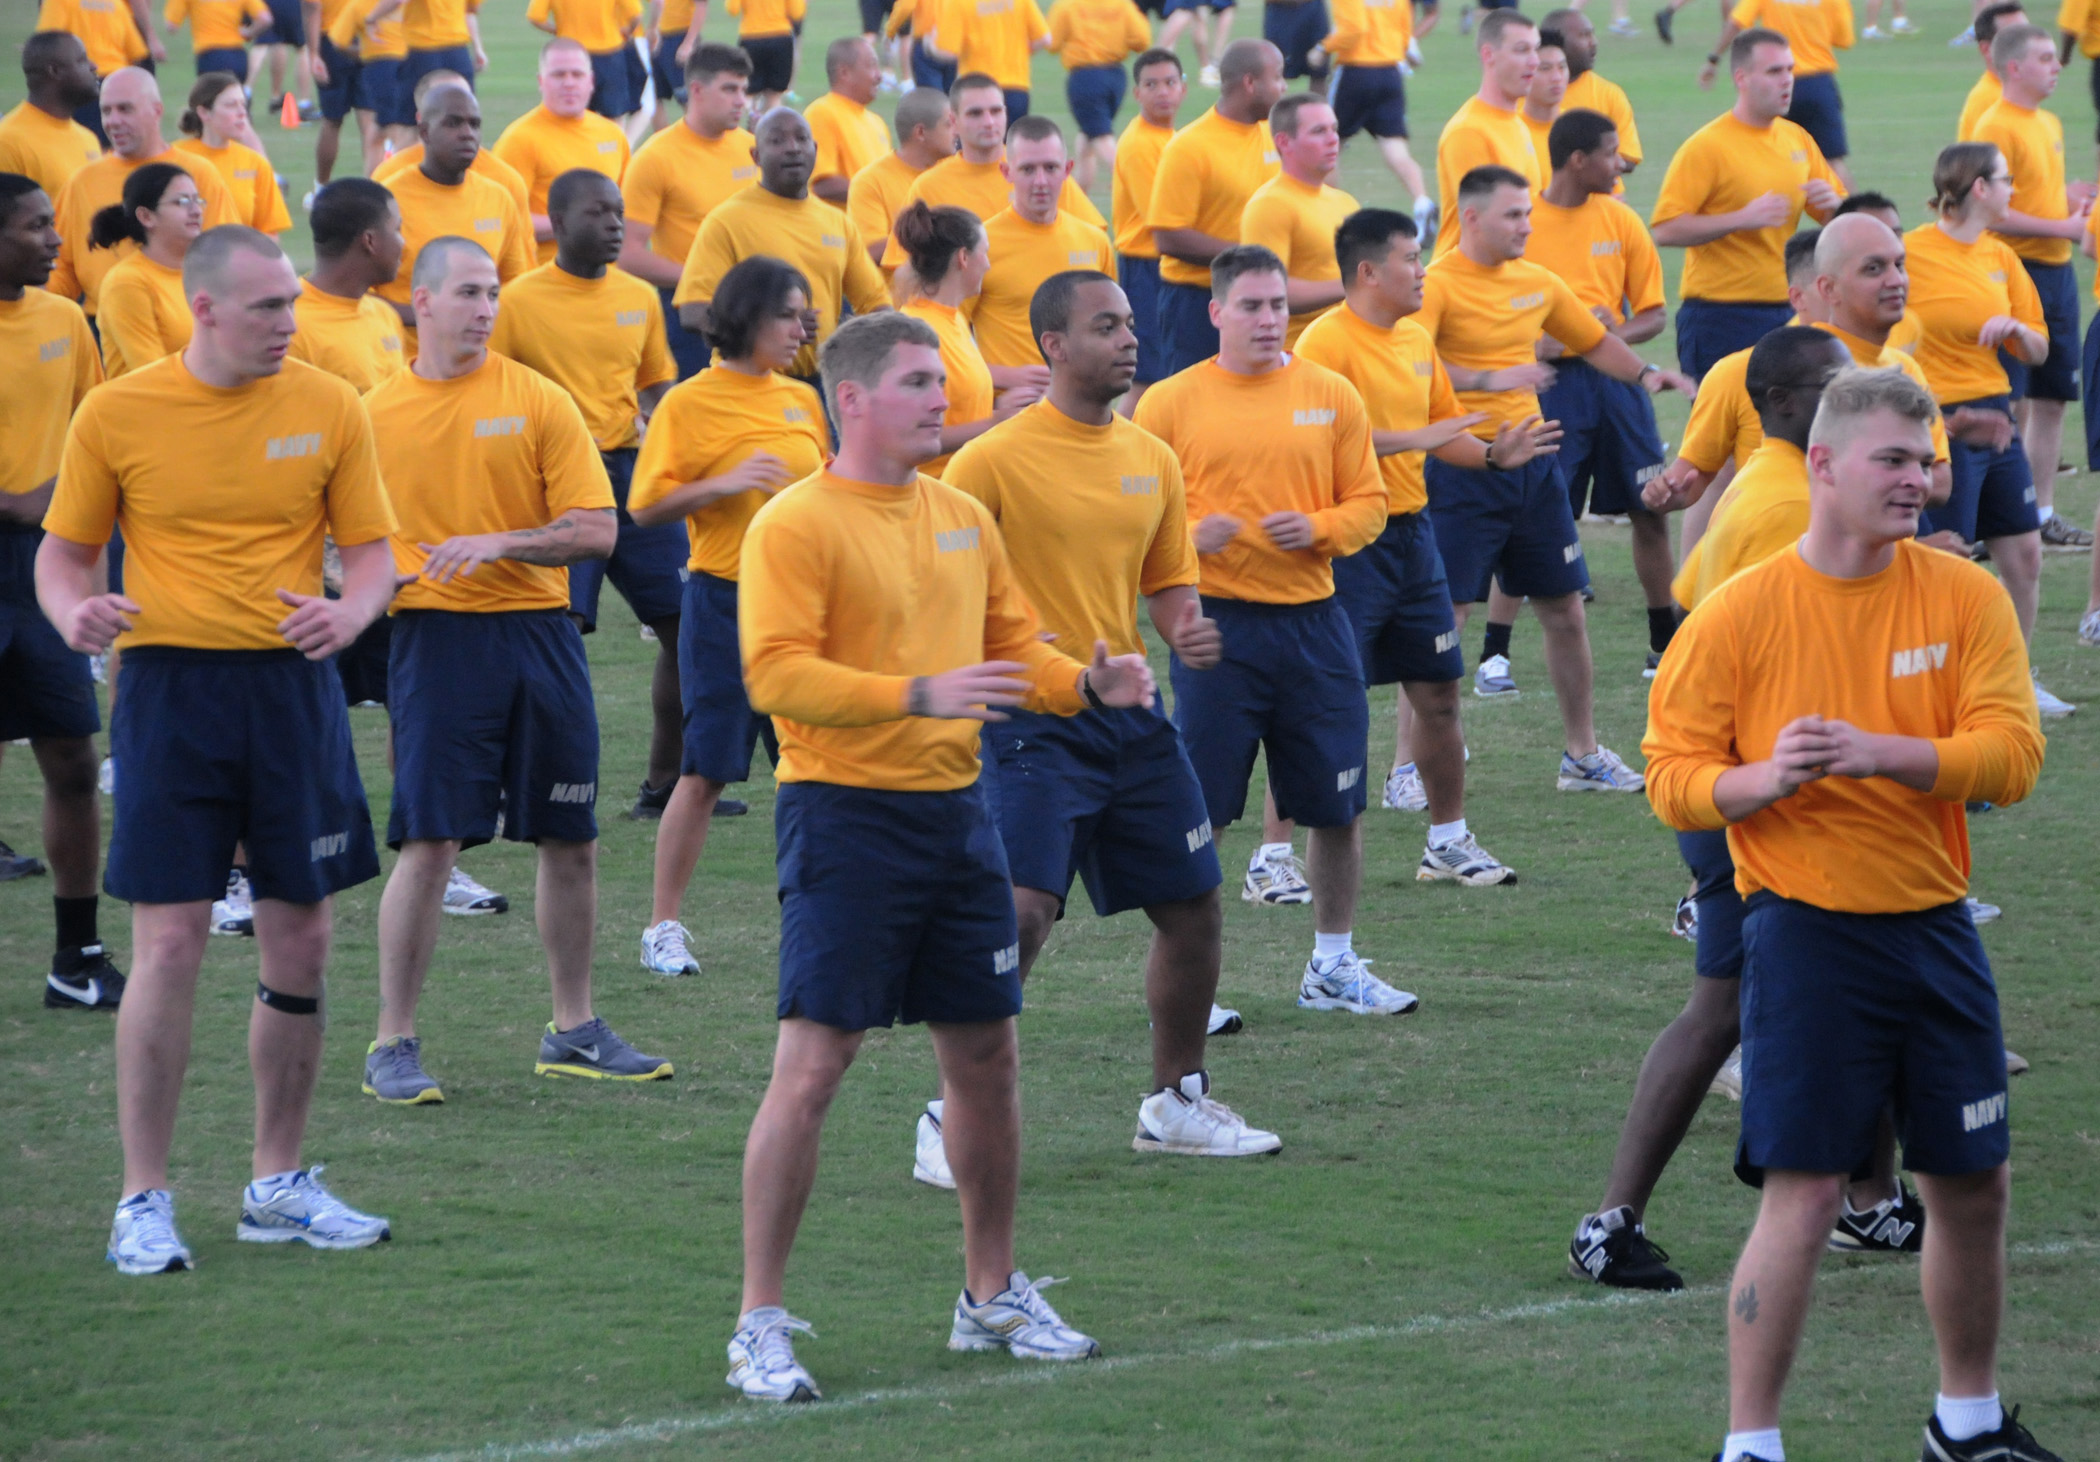 File:US Navy 100121-N-3666S-007 ailors participate in group physical